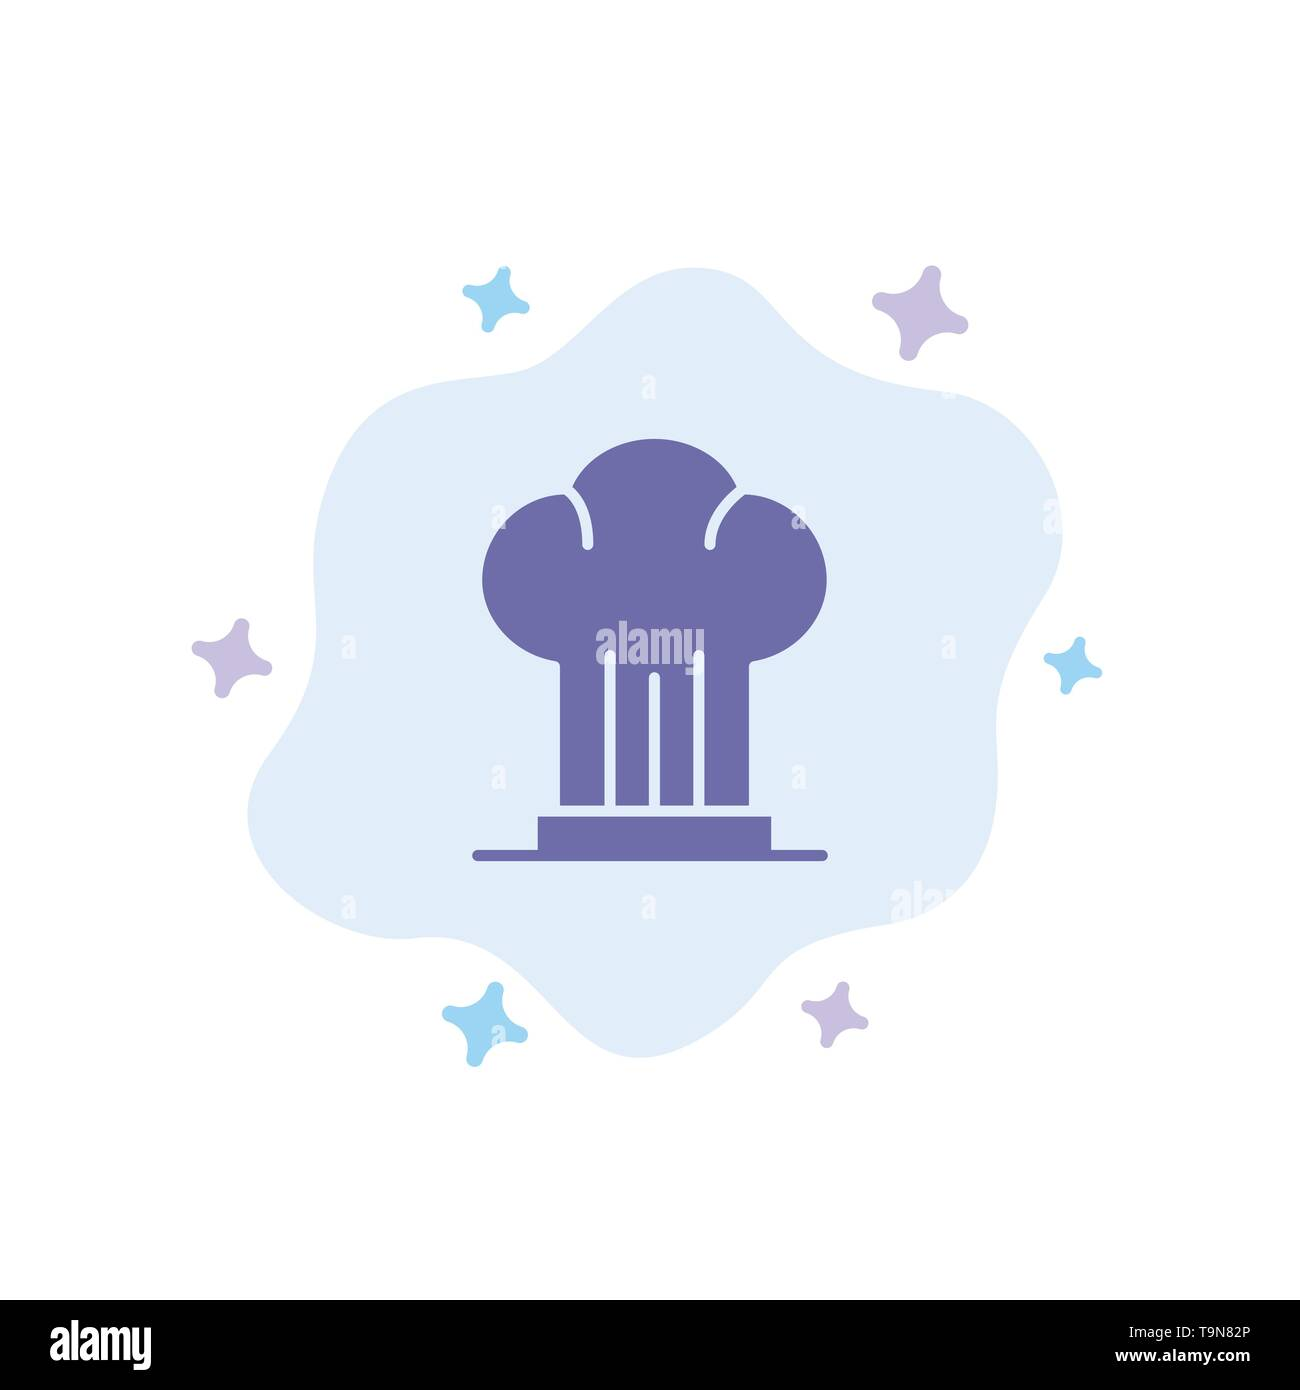 Cap, Chef, Cooker, Hat, Restaurant Blue Icon on Abstract Cloud Background - Stock Image